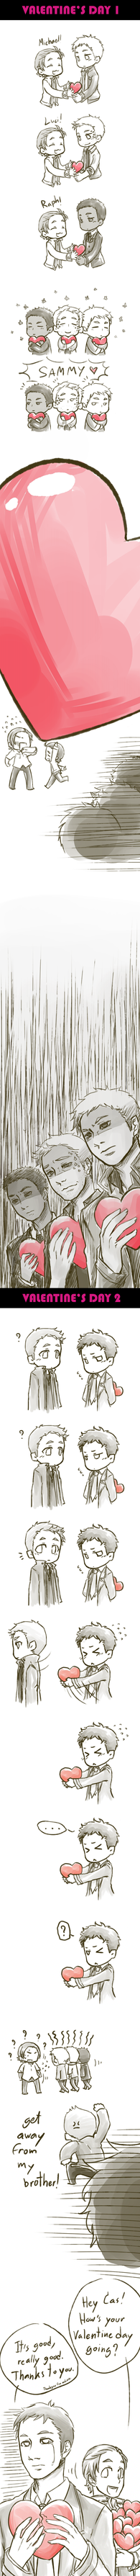 VALENTINE'S DAY by ILsama